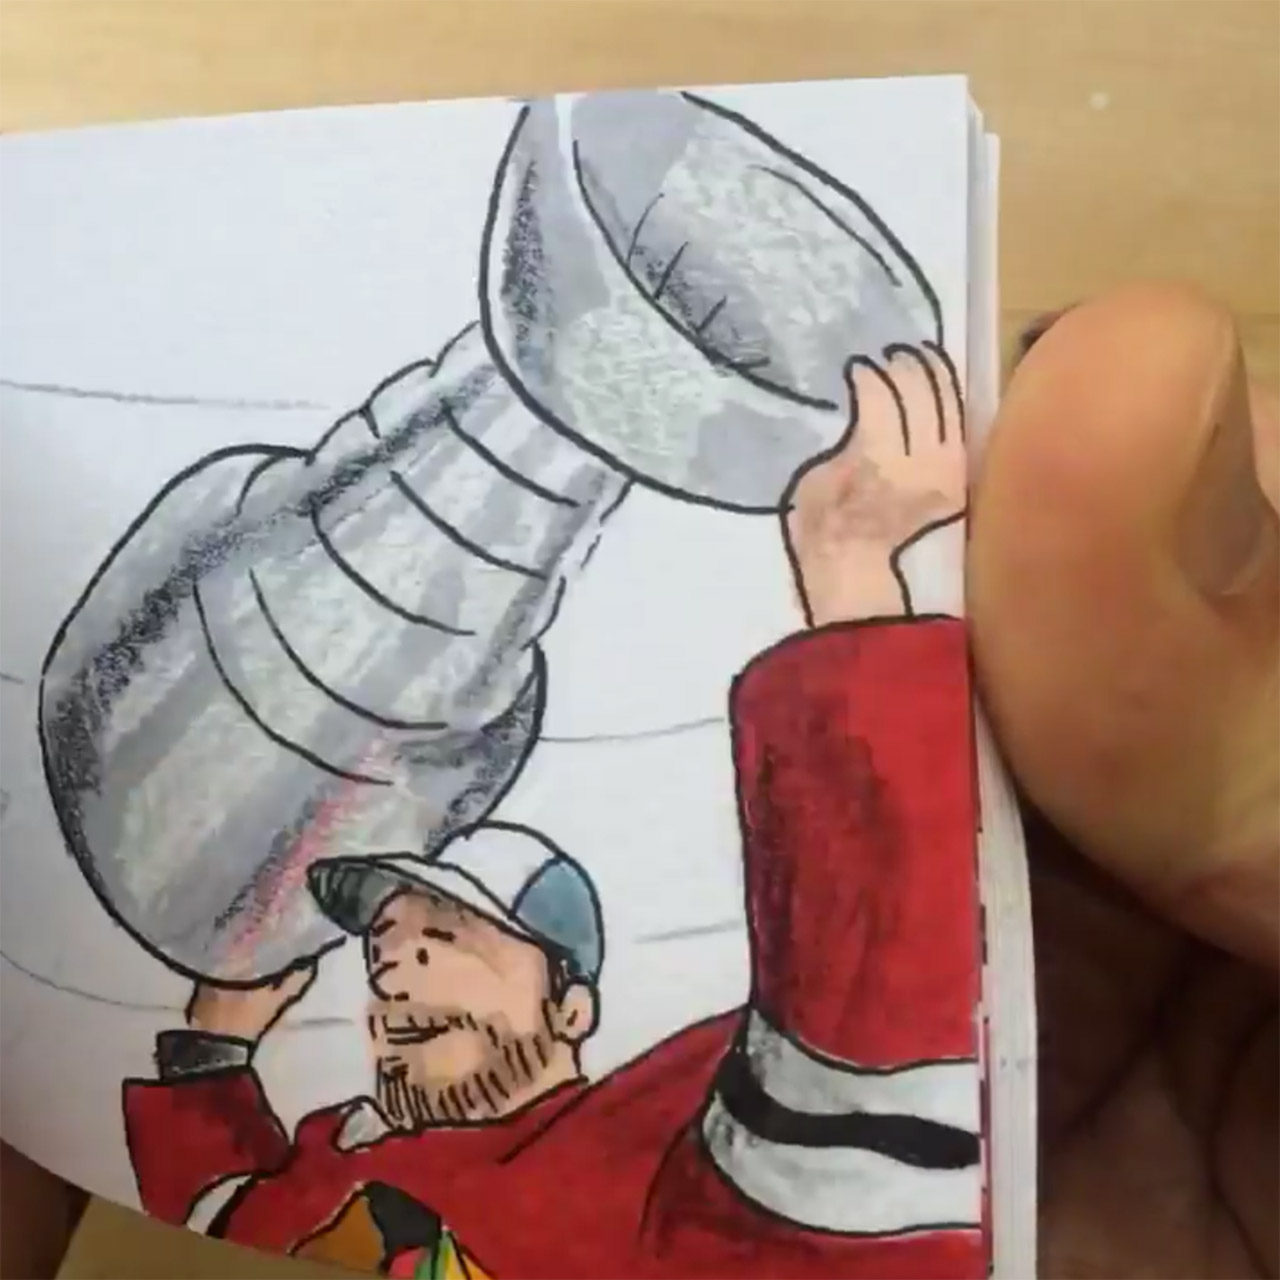 Blackhawks 2015 Stanley Cup Final flipbook animation